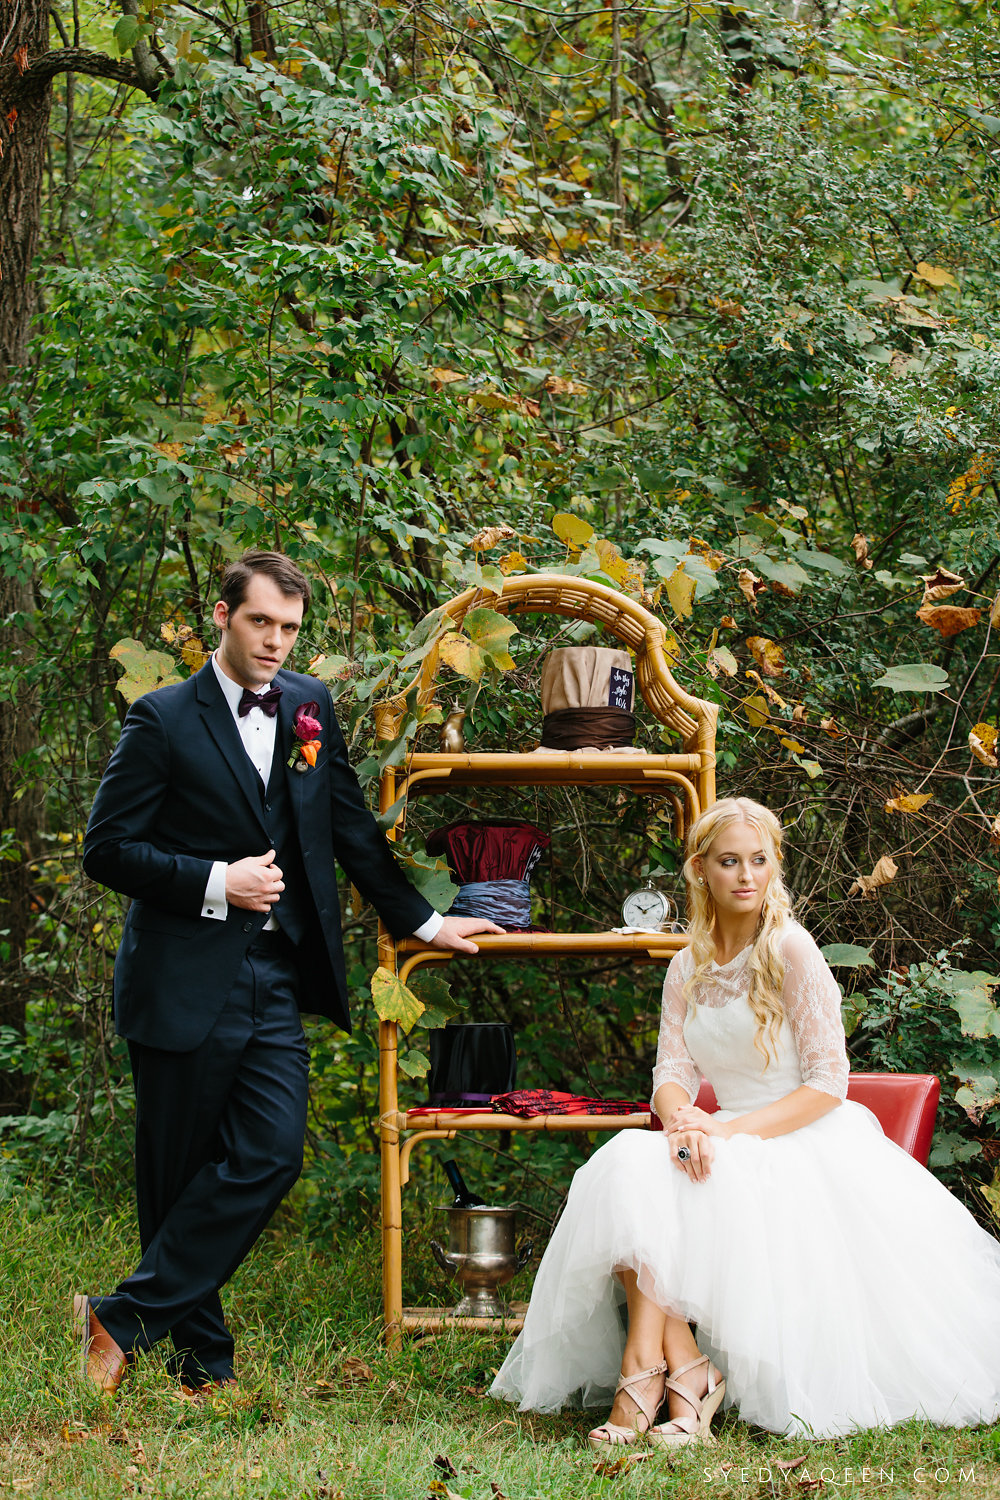 10 Alice in Wonderland Mad Hatter Wedding Inspiration Aribella Events.JPG